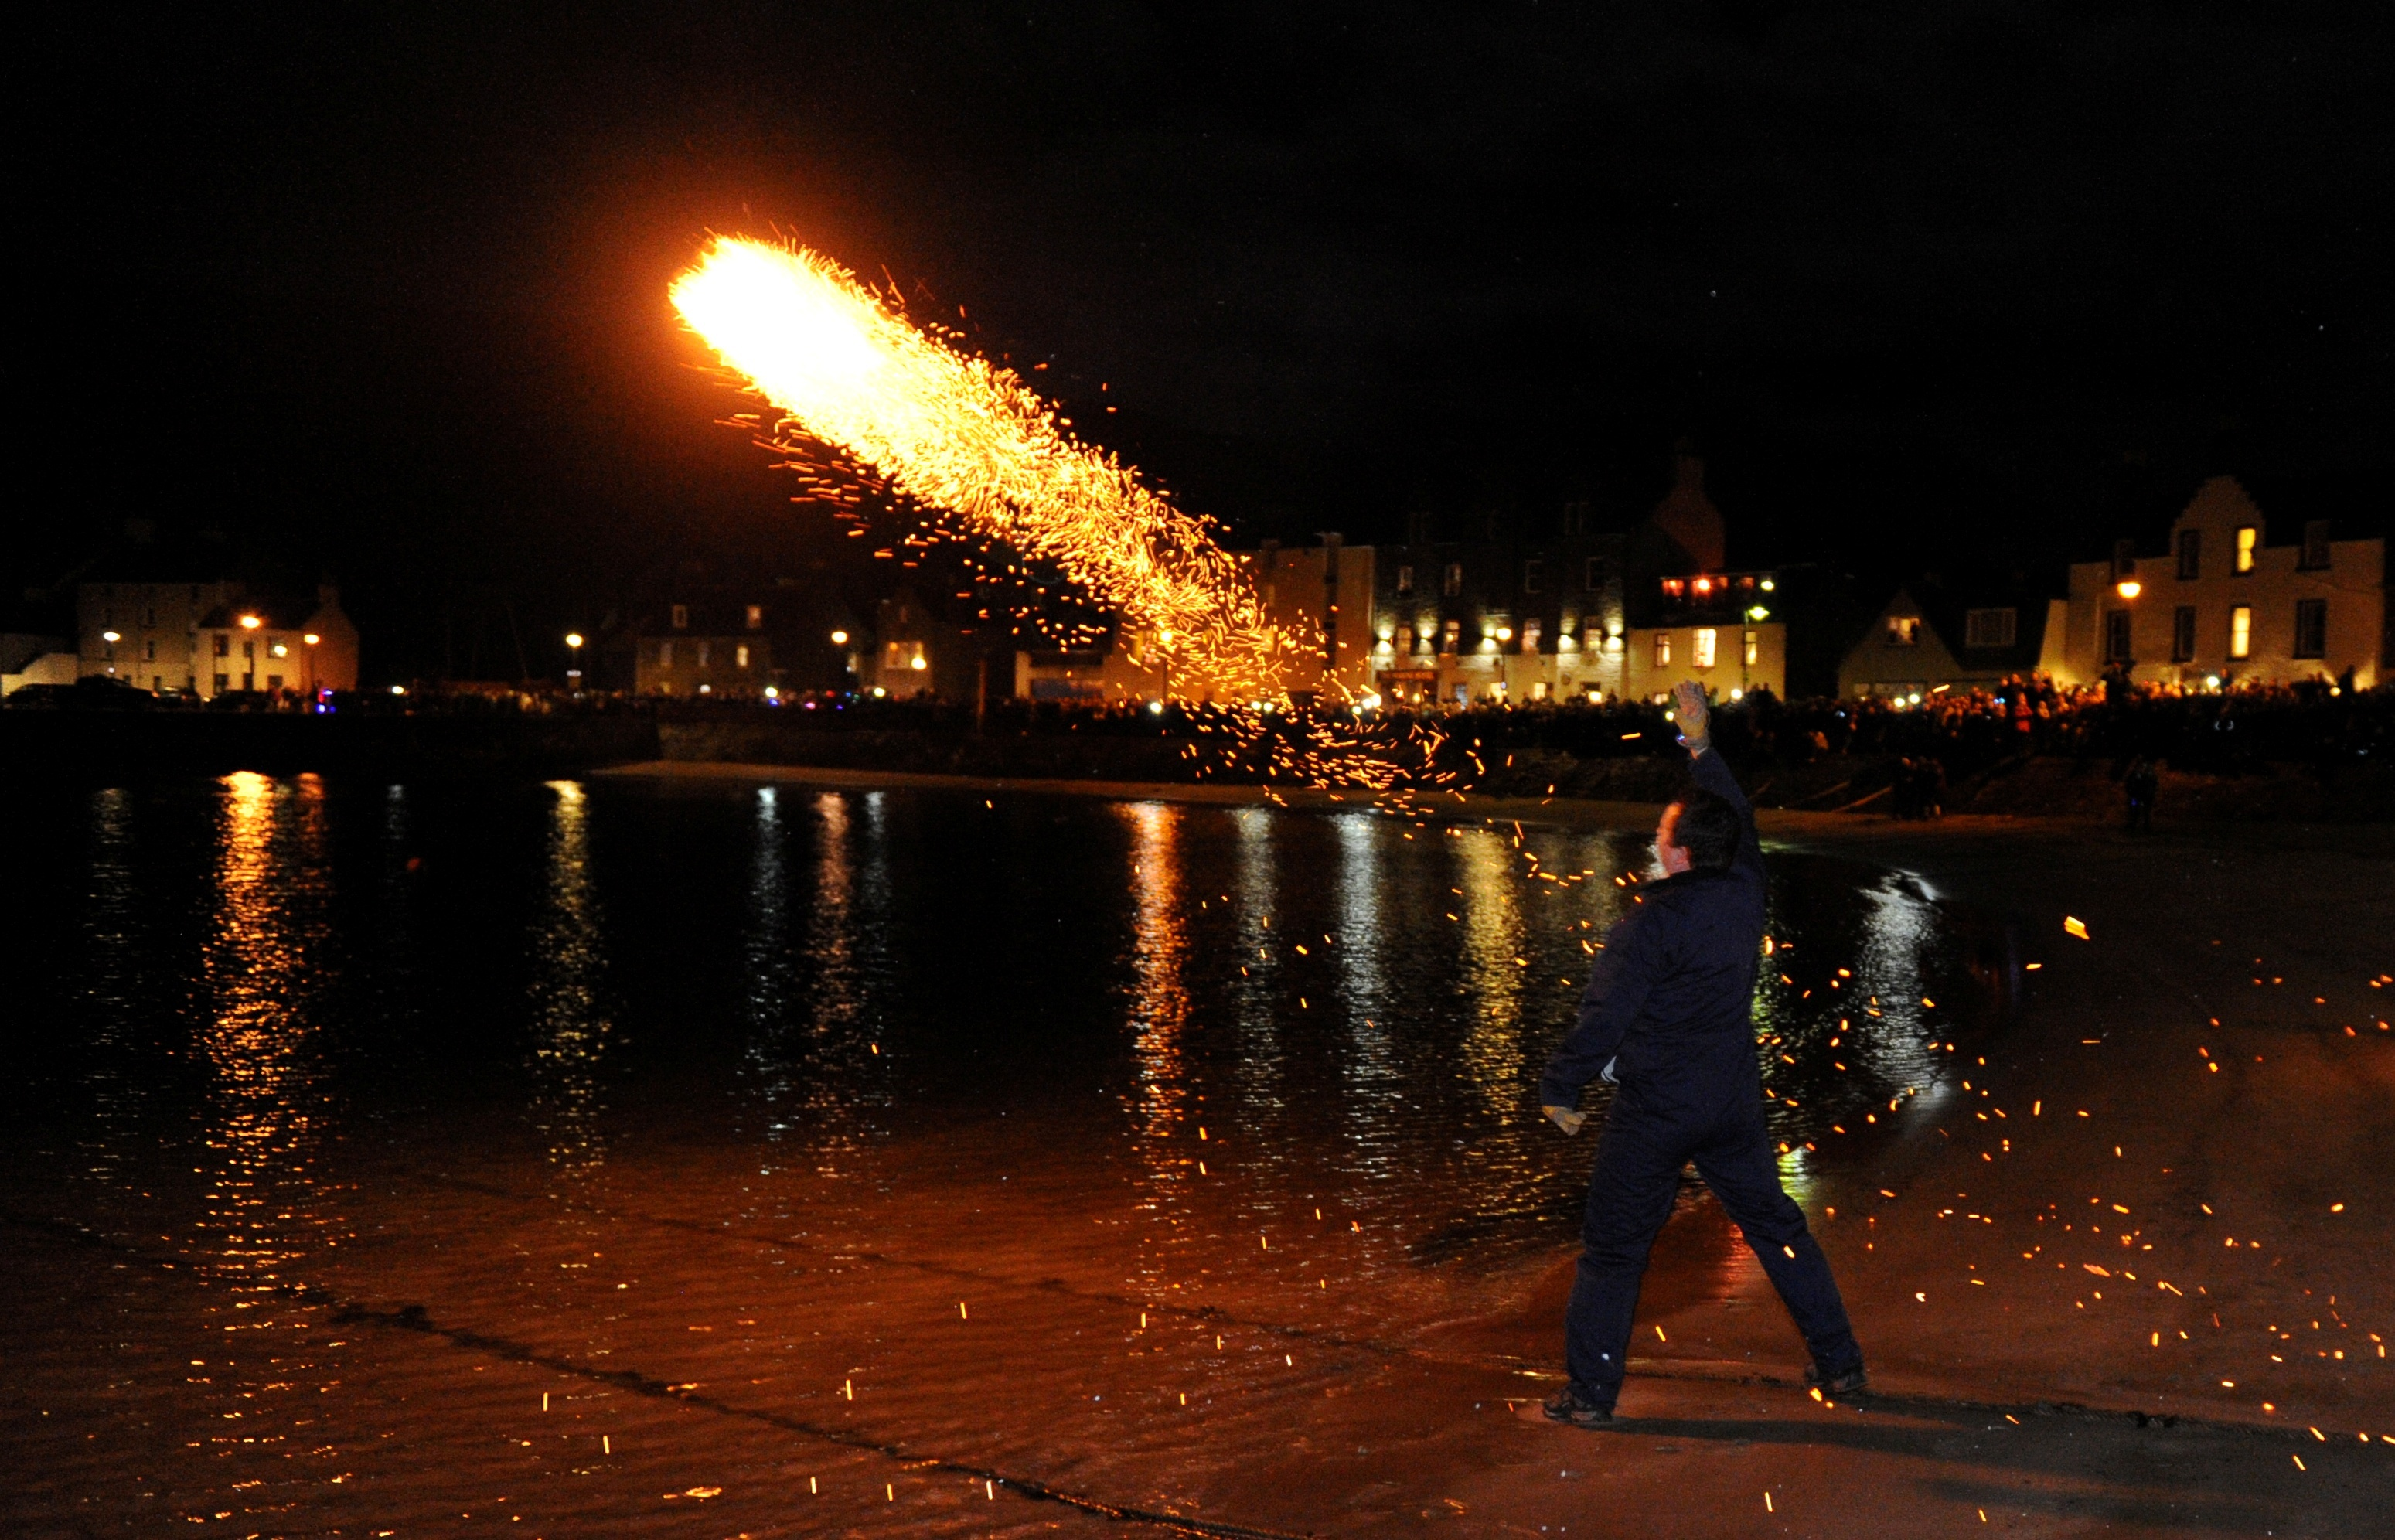 A fireball is launched into the water after the event on Hogmanay 2014.